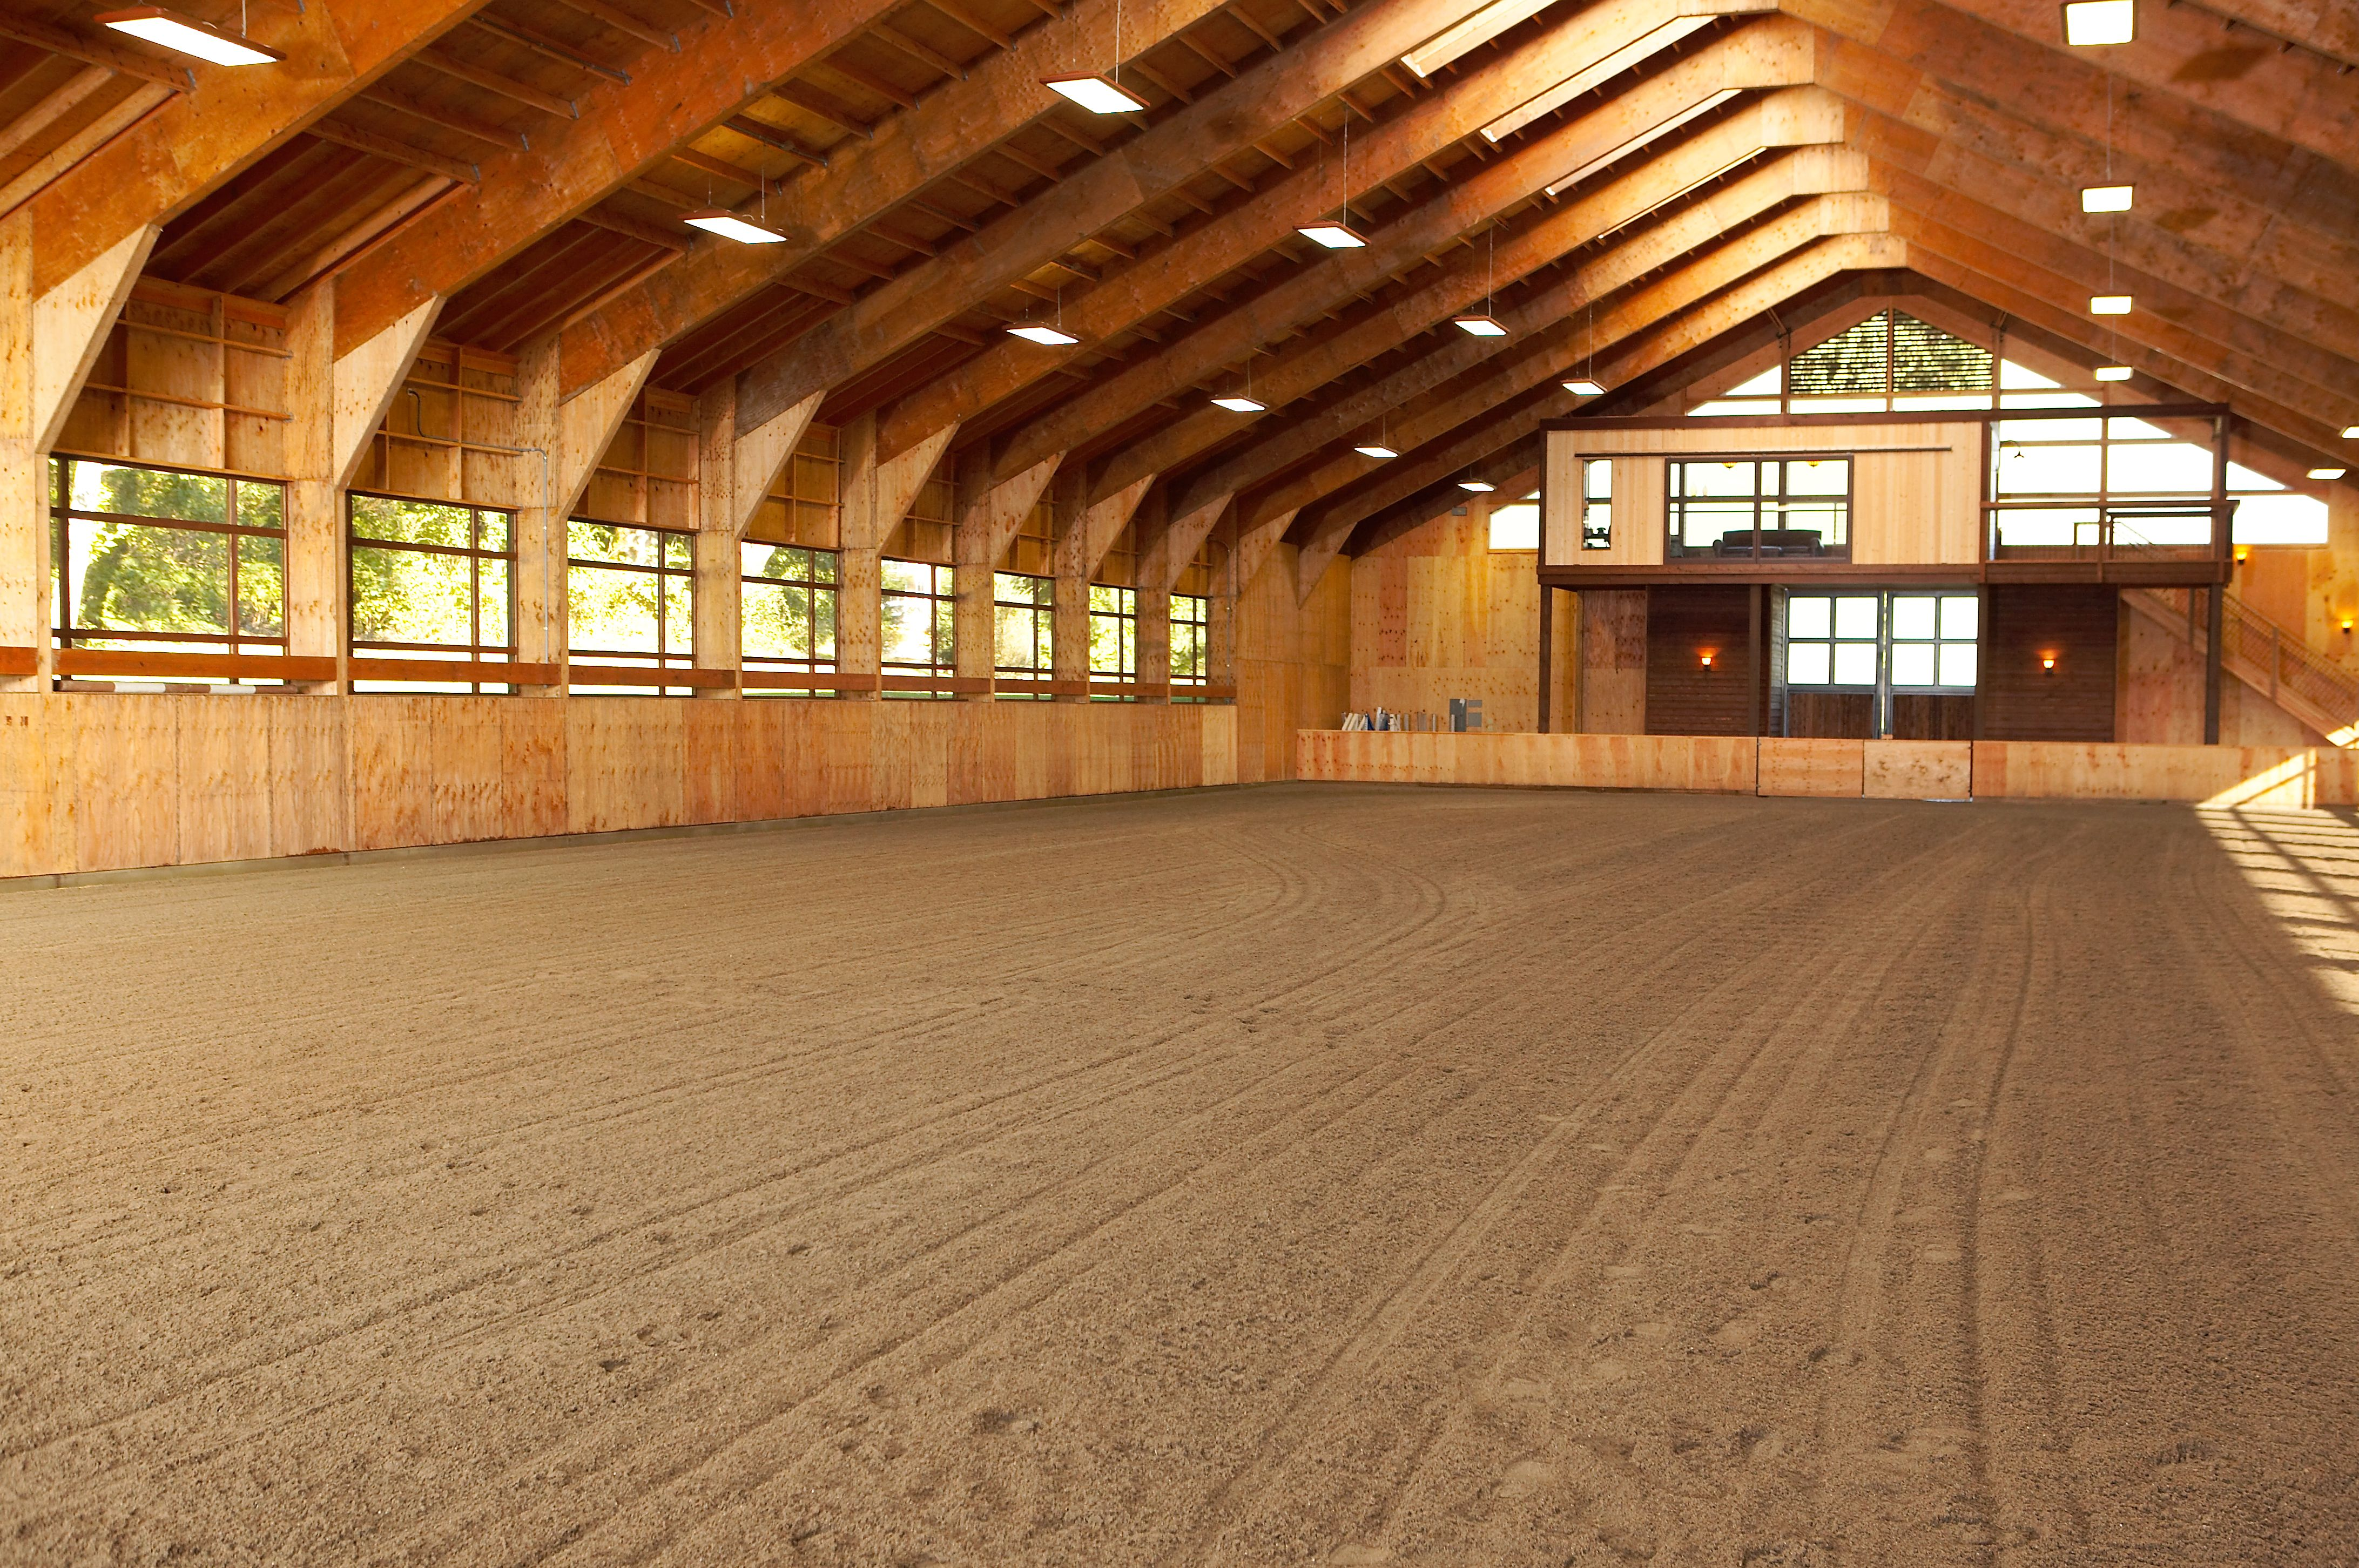 What A Gorgeous Stable I Wouldnt Even Want To Bring My Horse In It Looks So Clean